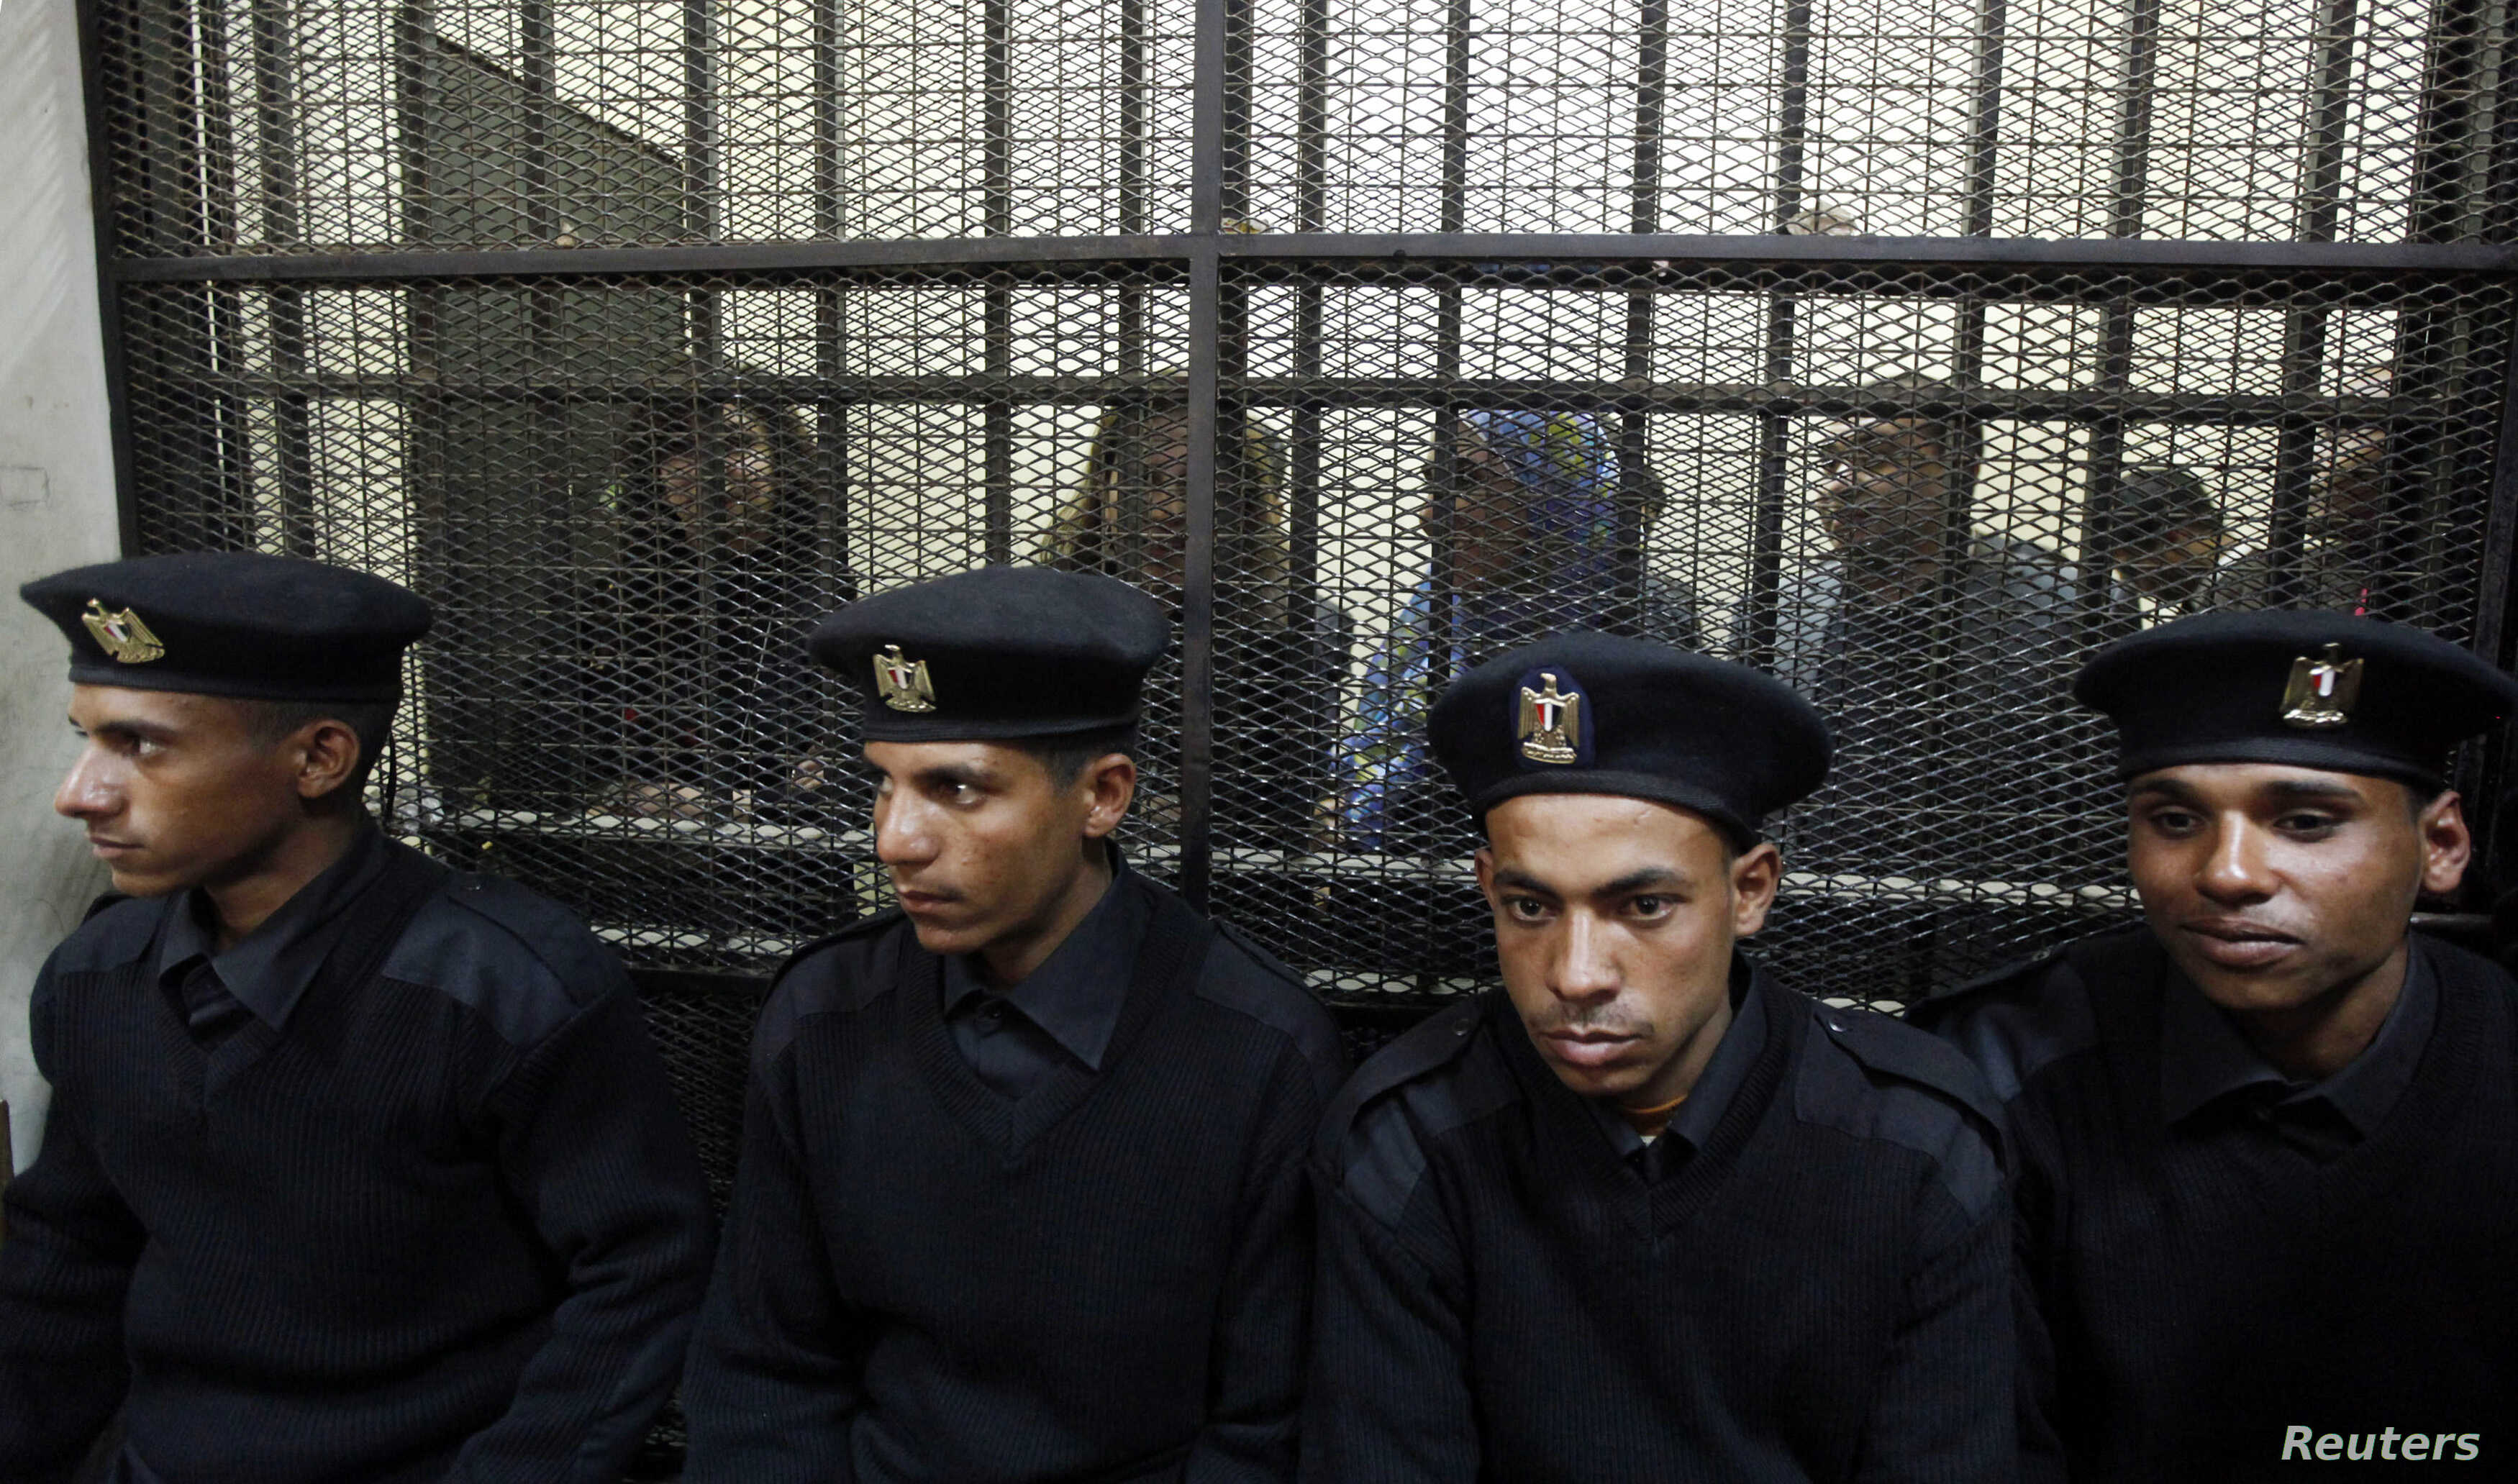 FILE - Some of the 14 Egyptian activists who were accused of working for unlicensed nongovernmental organizations (NGOs) and receiving illegal foreign funds stand in a cage during the opening of their trial in Cairo, Feb. 26, 2012.